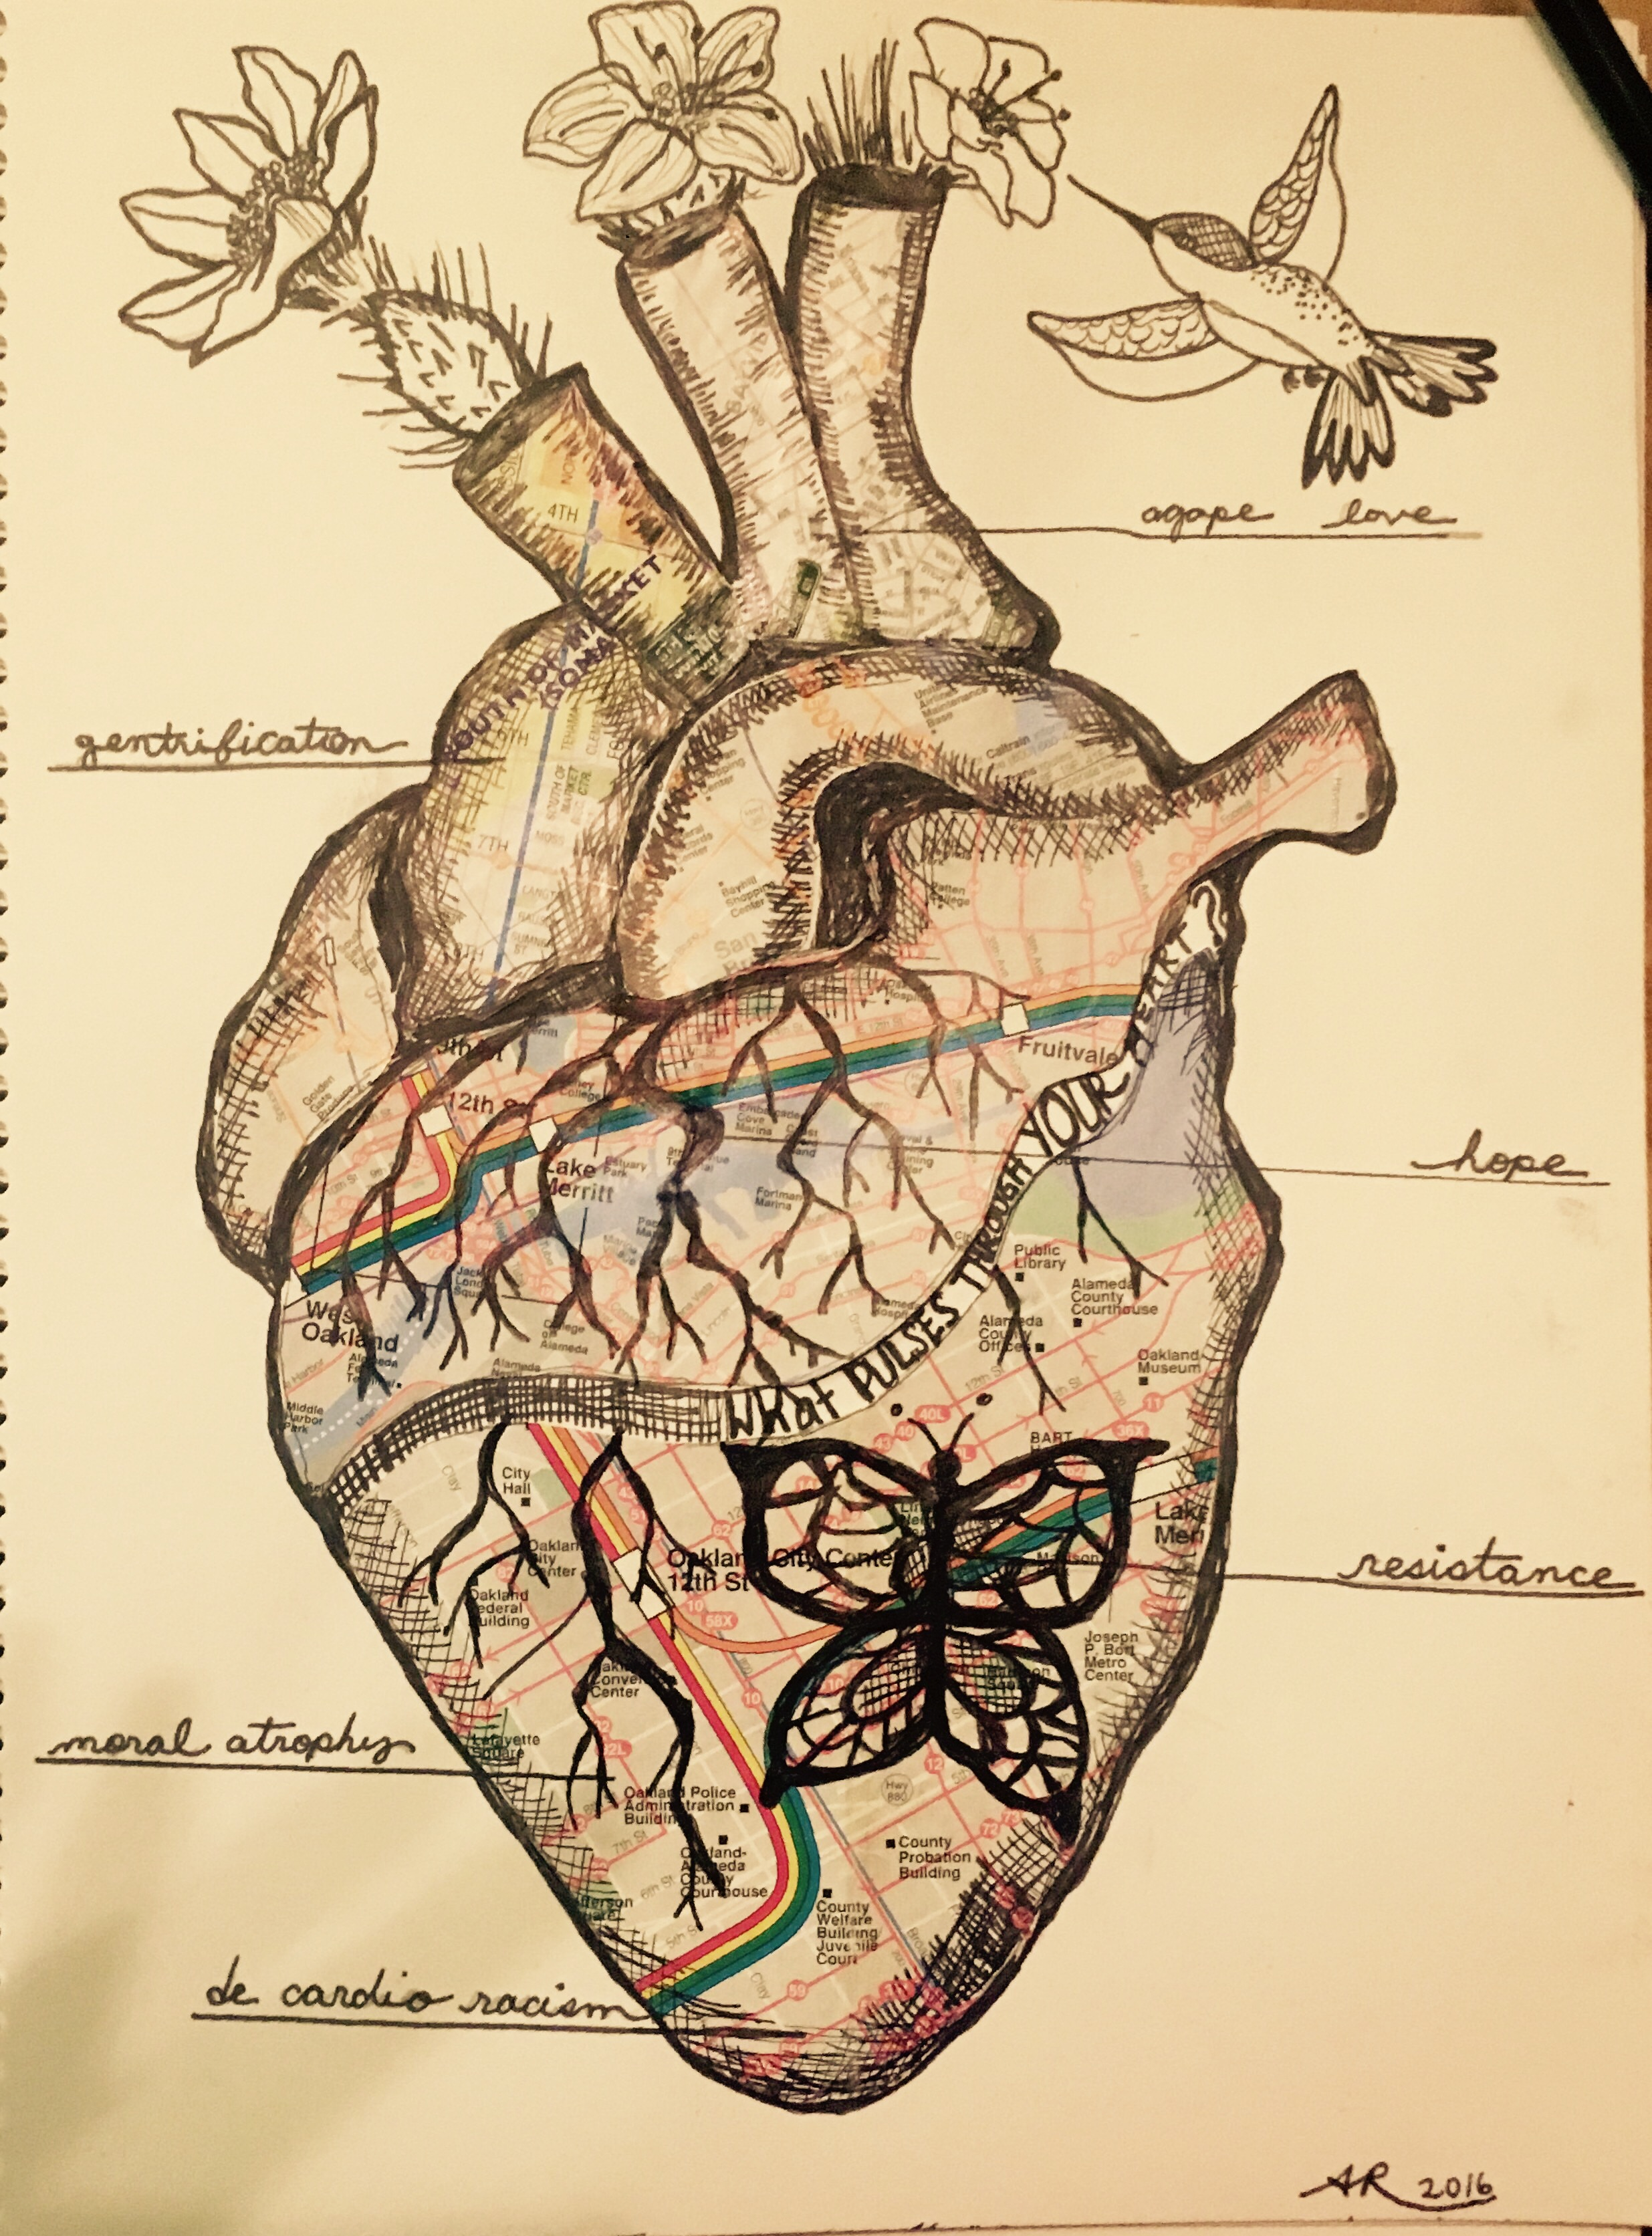 Anna Ríos-Rojas' heart artwork